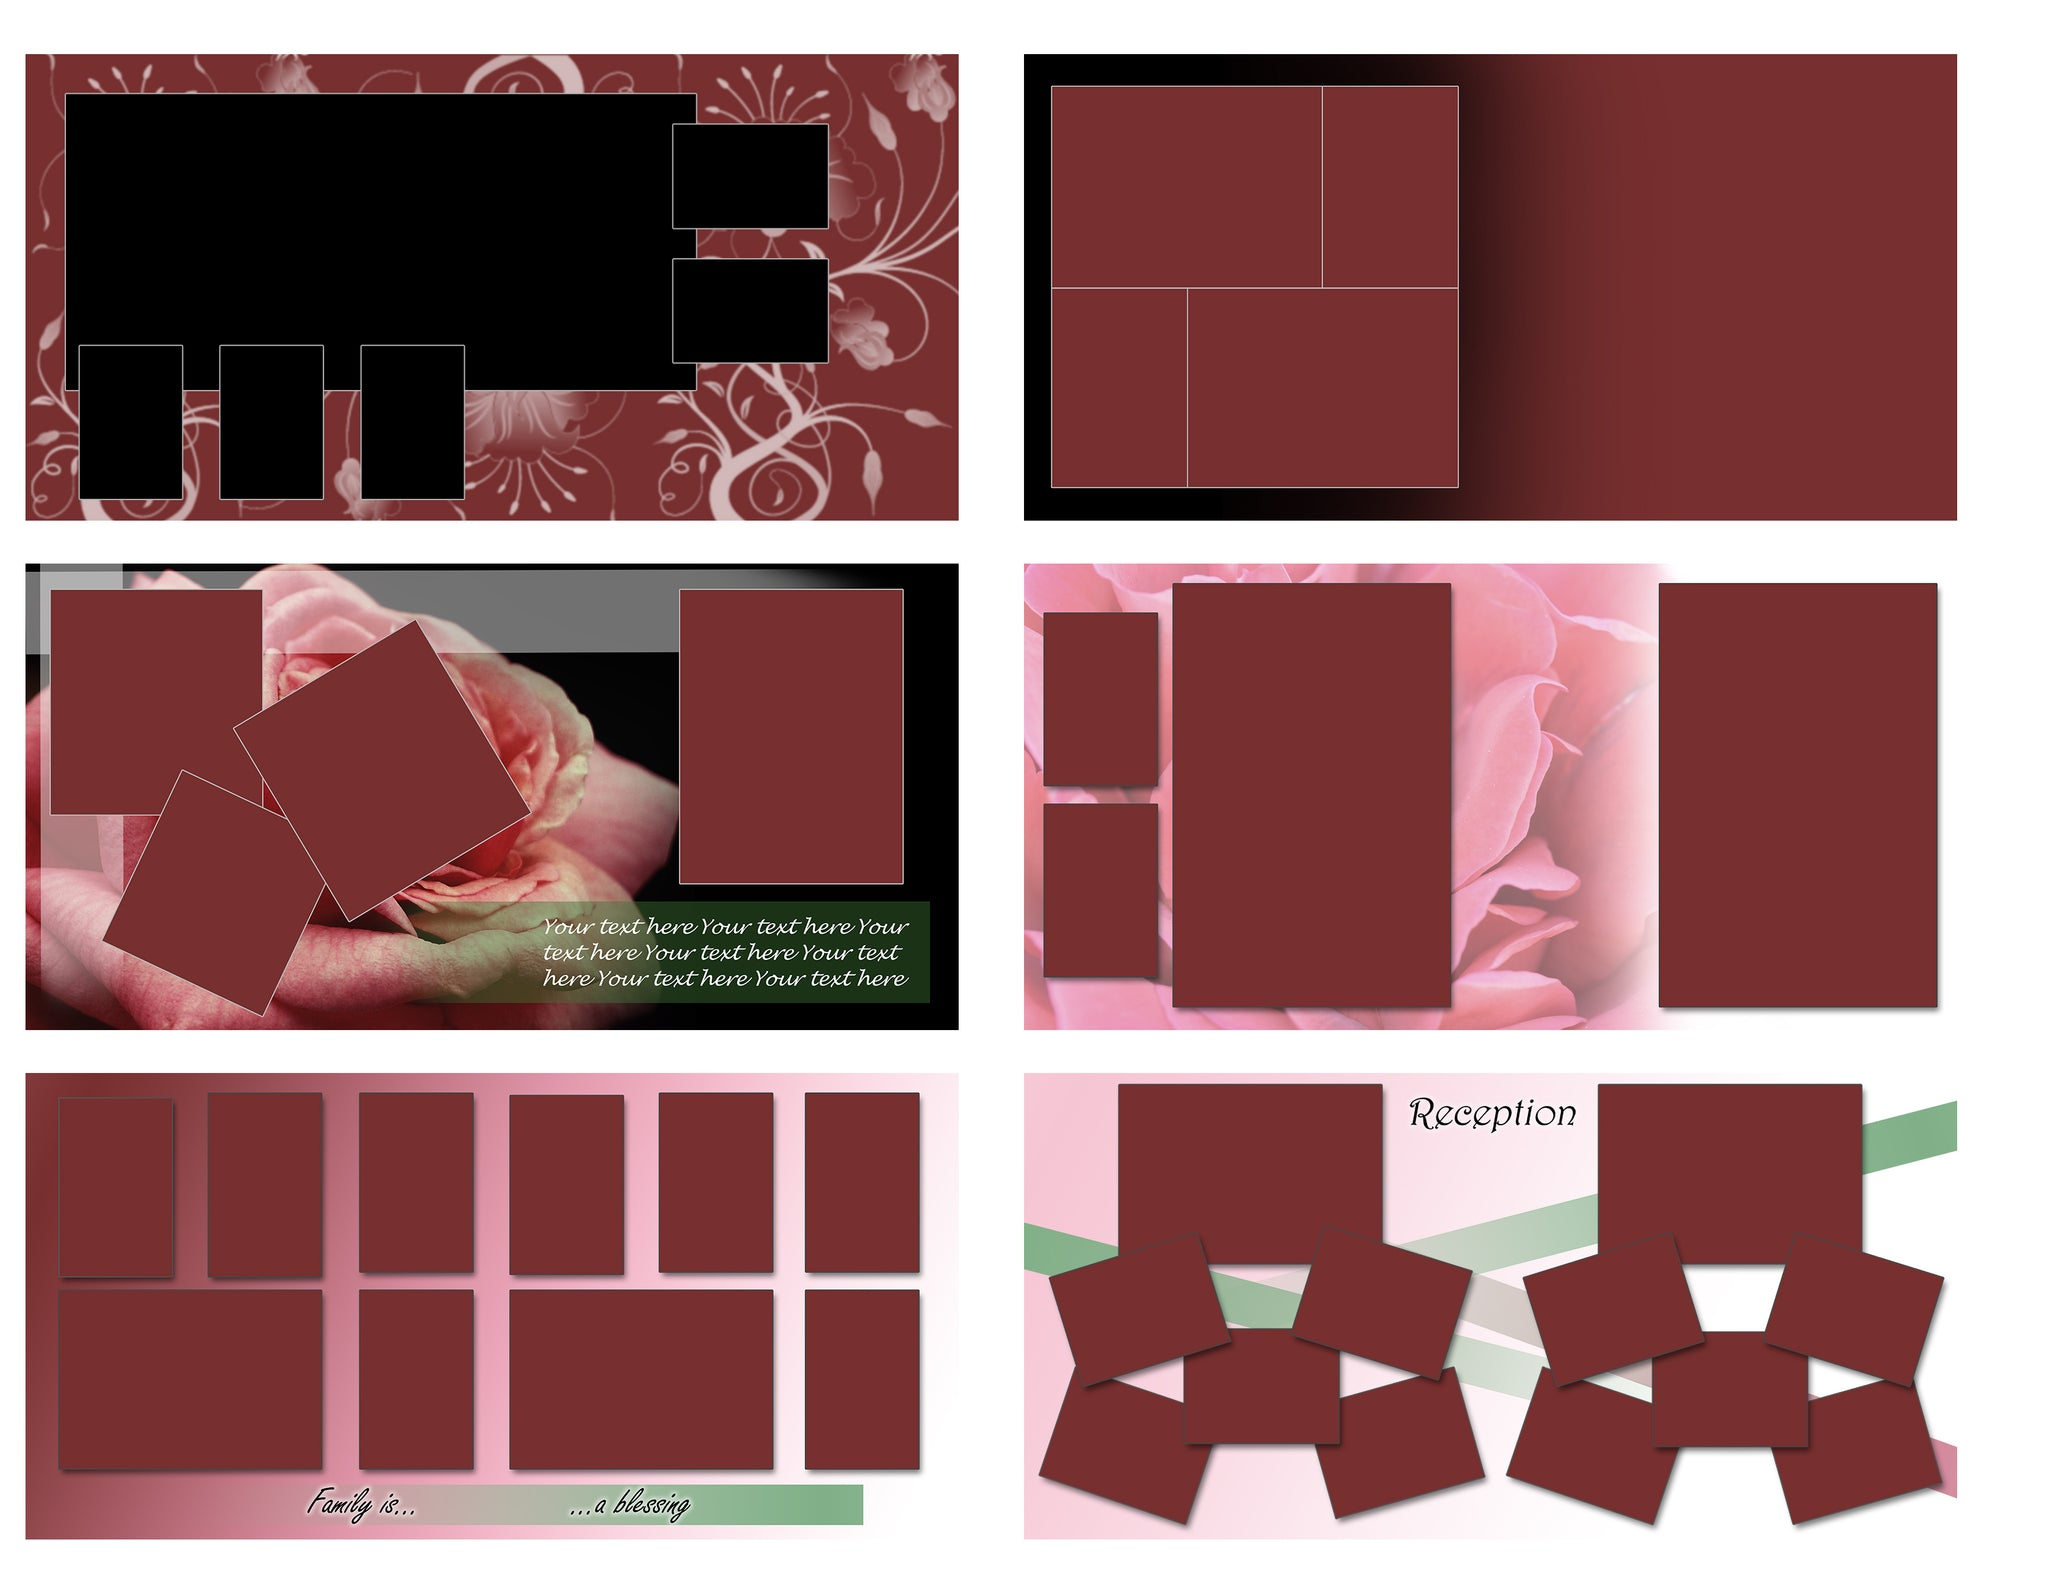 25 Rose StoryBoard Templates set 4